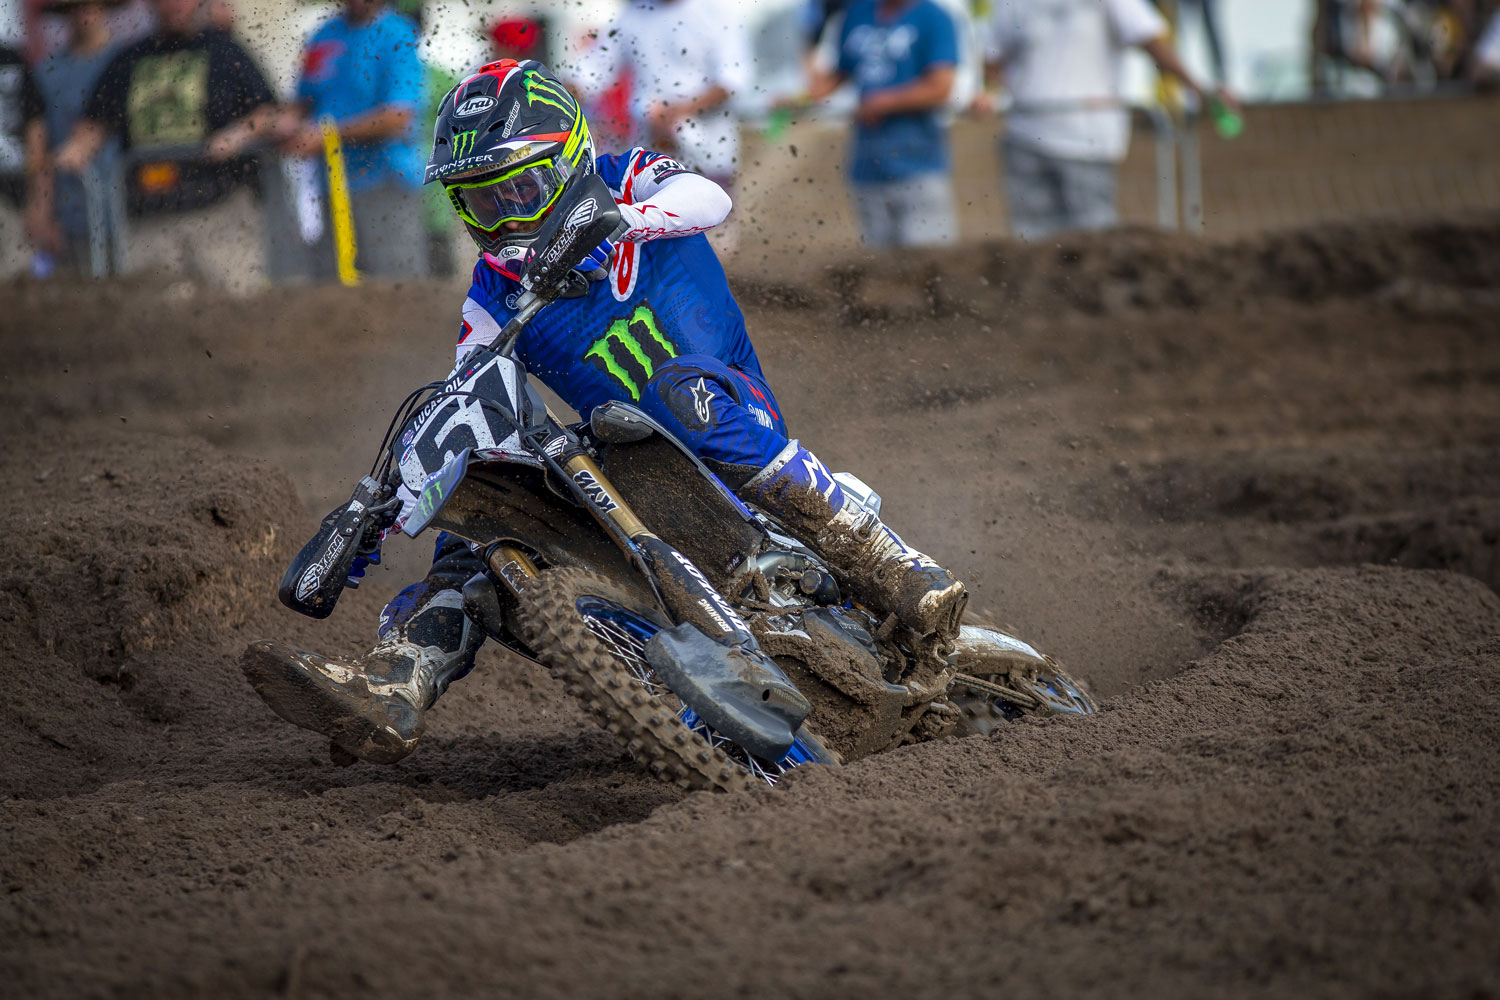 BARCIA_2019_FLORIDA_MX_web.jpg